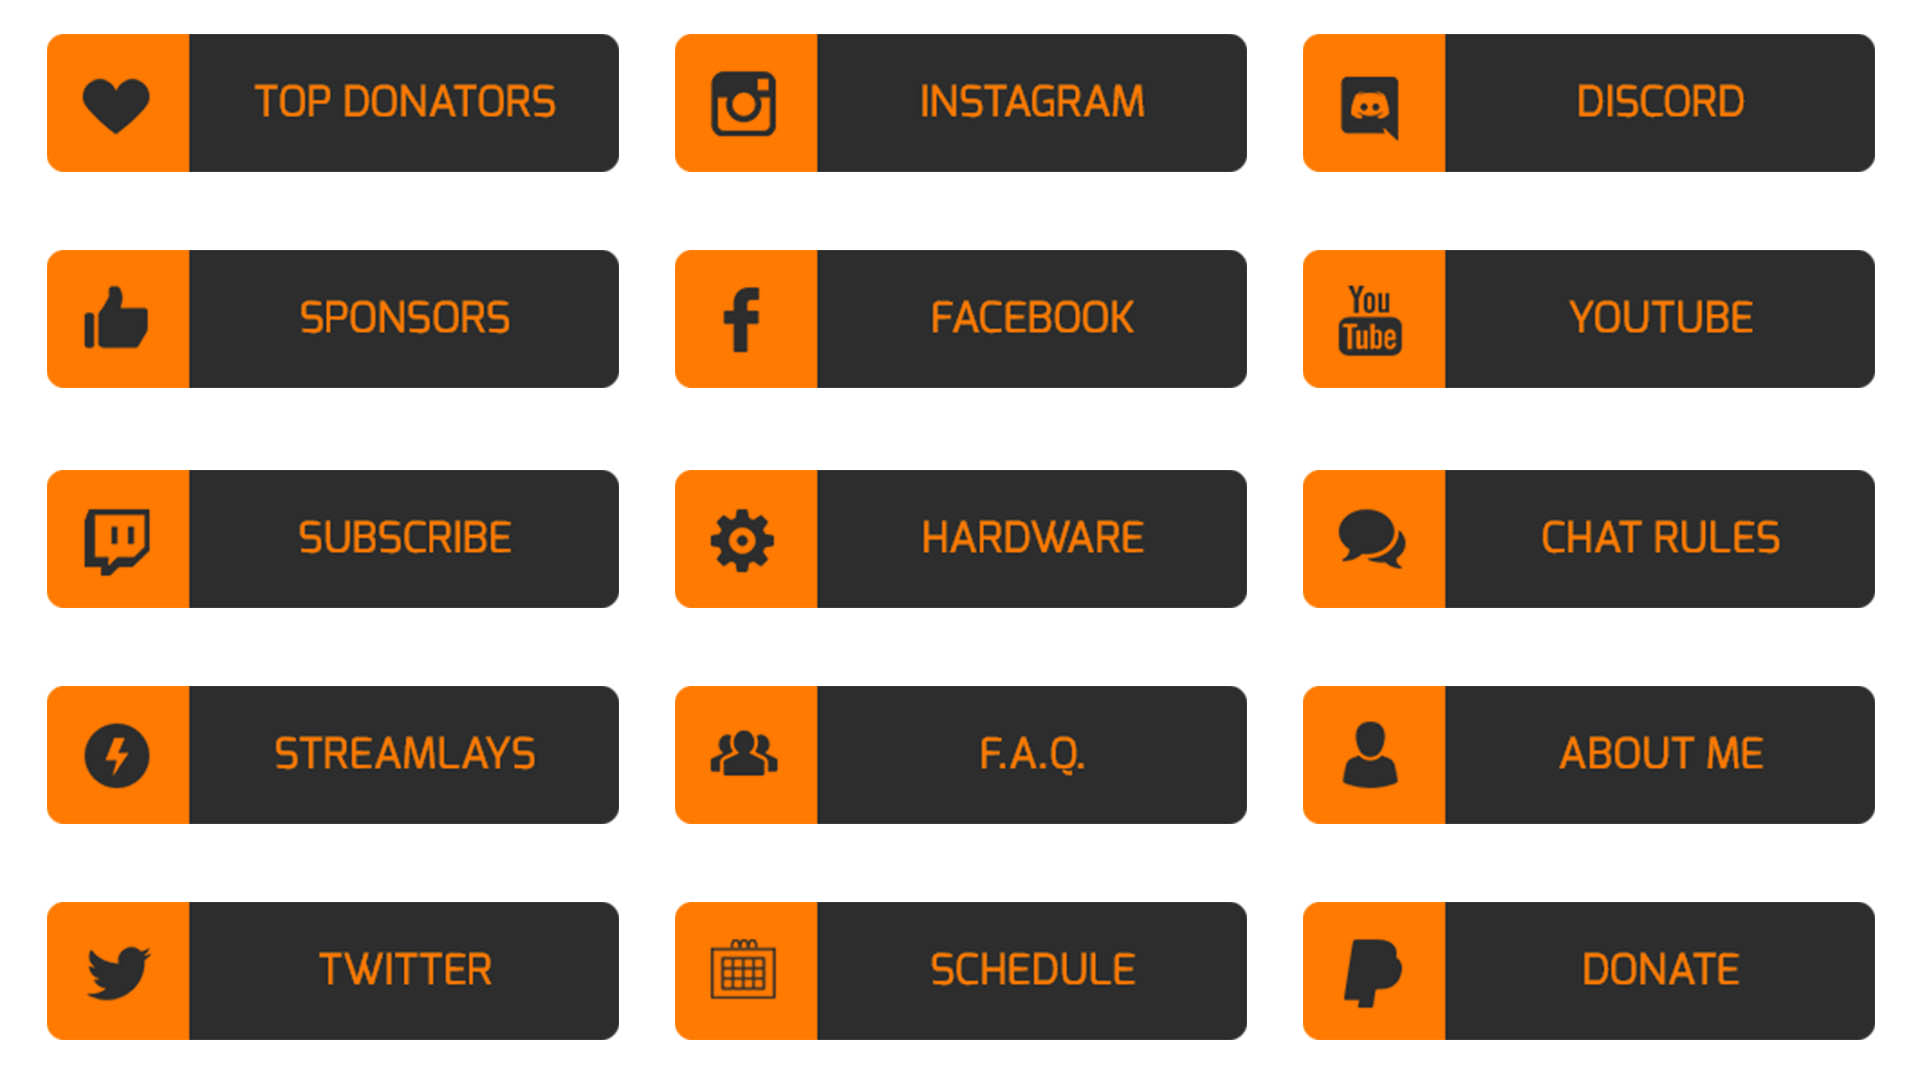 Preview-Alpha-Twitch-Panels-Orange.jpg